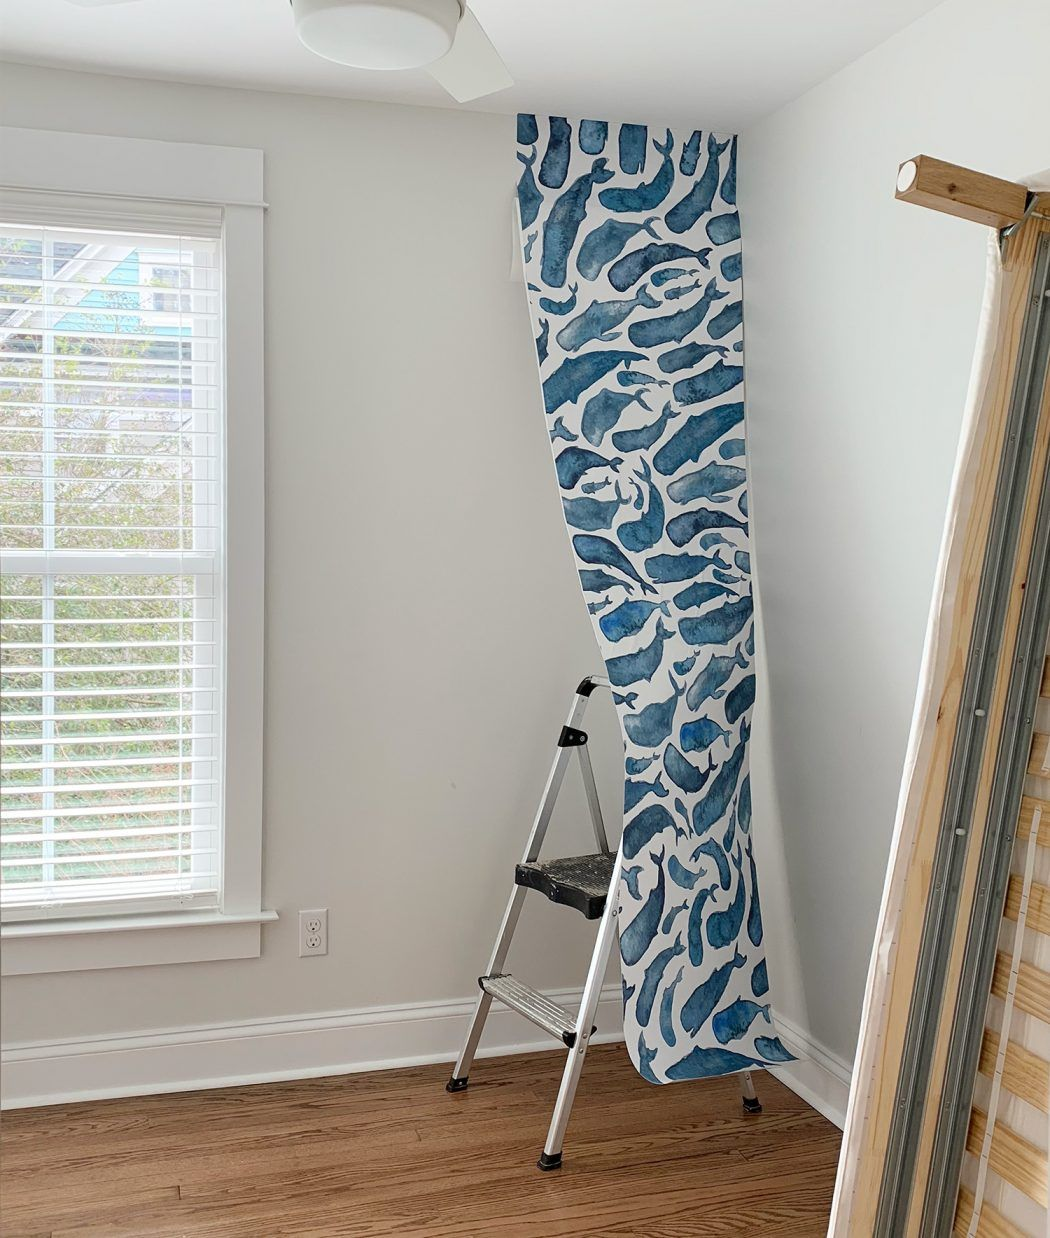 One Panel Of Whale Removable Wallpaper Partially Hung In Room Removable Wallpaper Wallpaper Crafts Mural Wallpaper